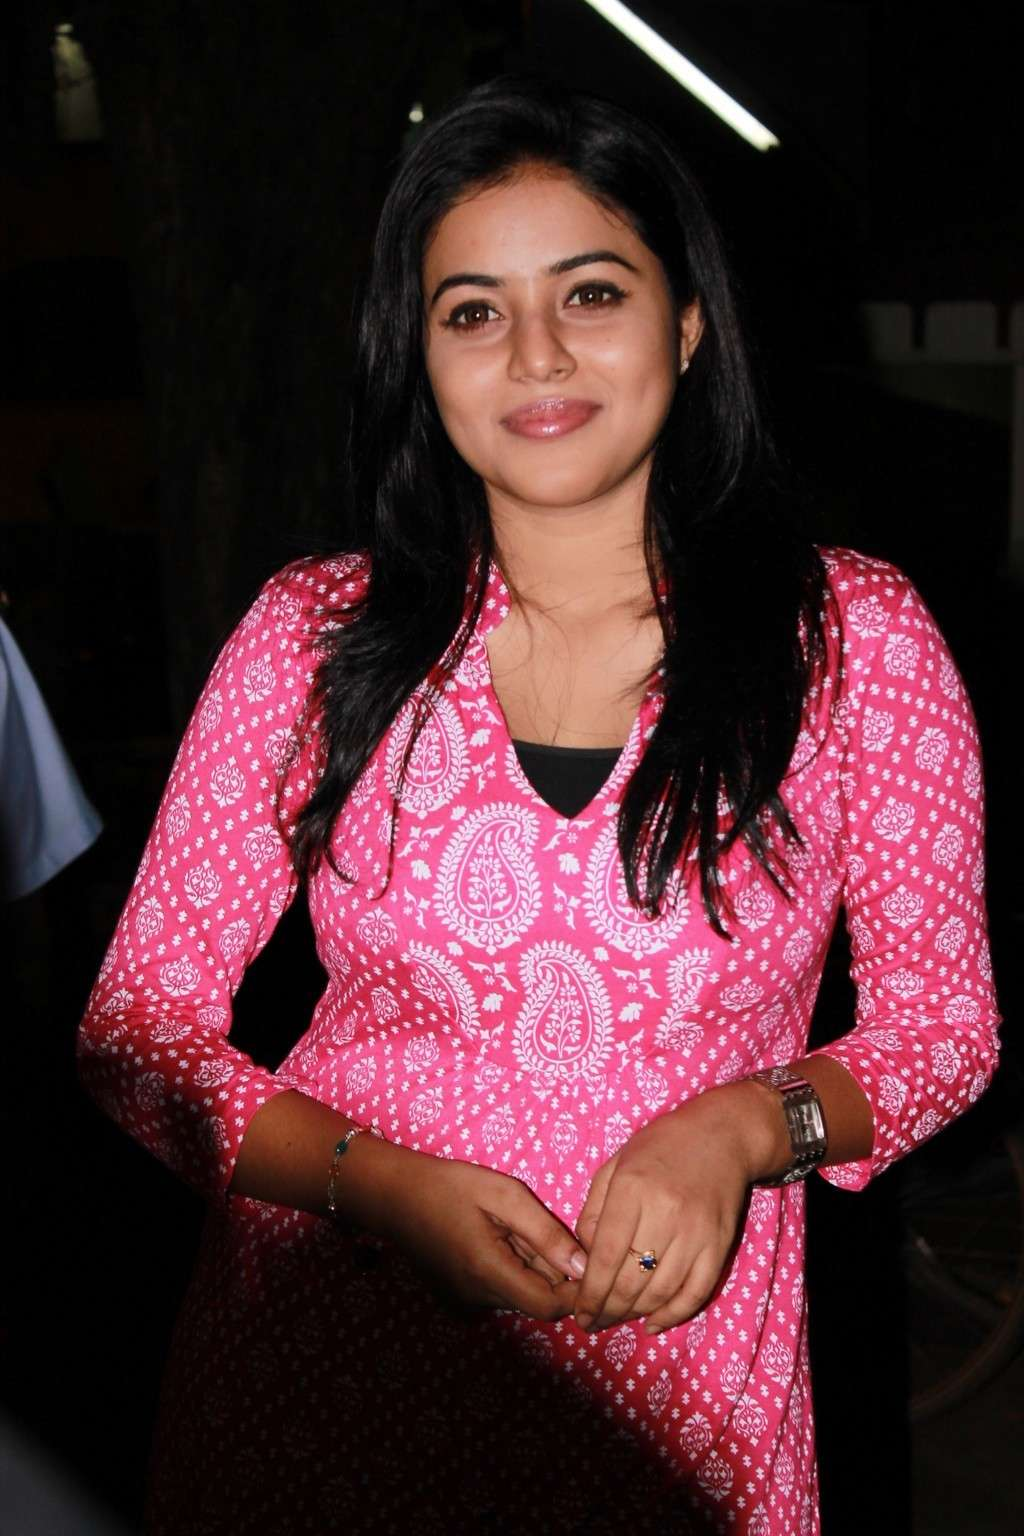 Poorna Bright in Pink Top Poorna20